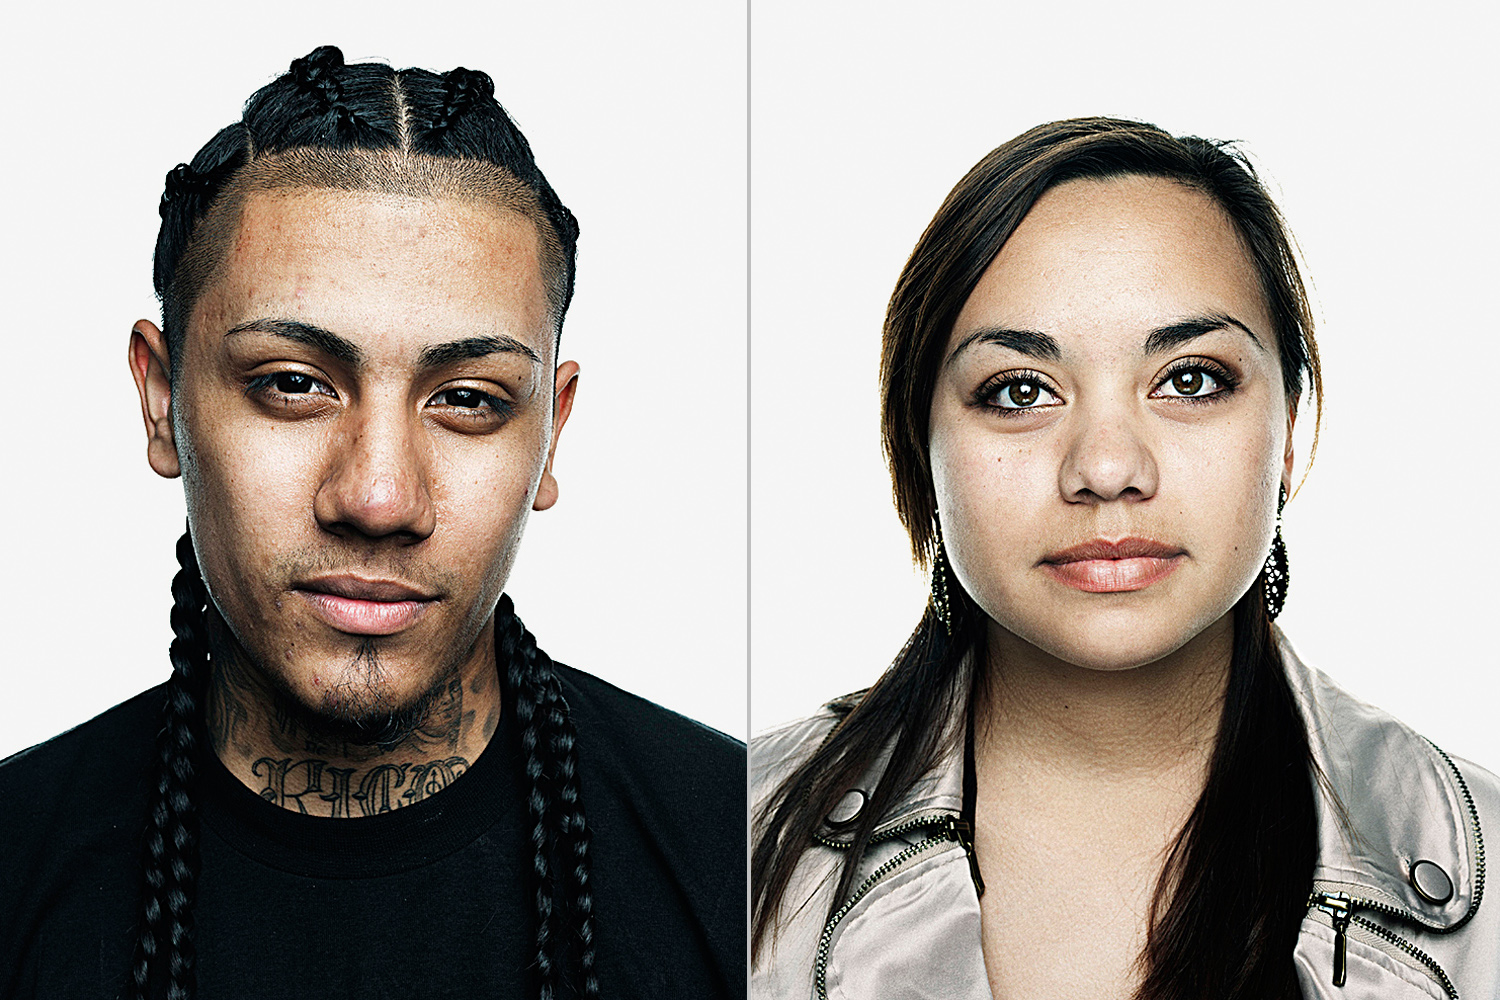 Fabien Rubi, 20 (L) and Claudia Aguirre, 23. From  Why Latino Voters Will Swing the 2012 Election,  March 5, 2012 issue.